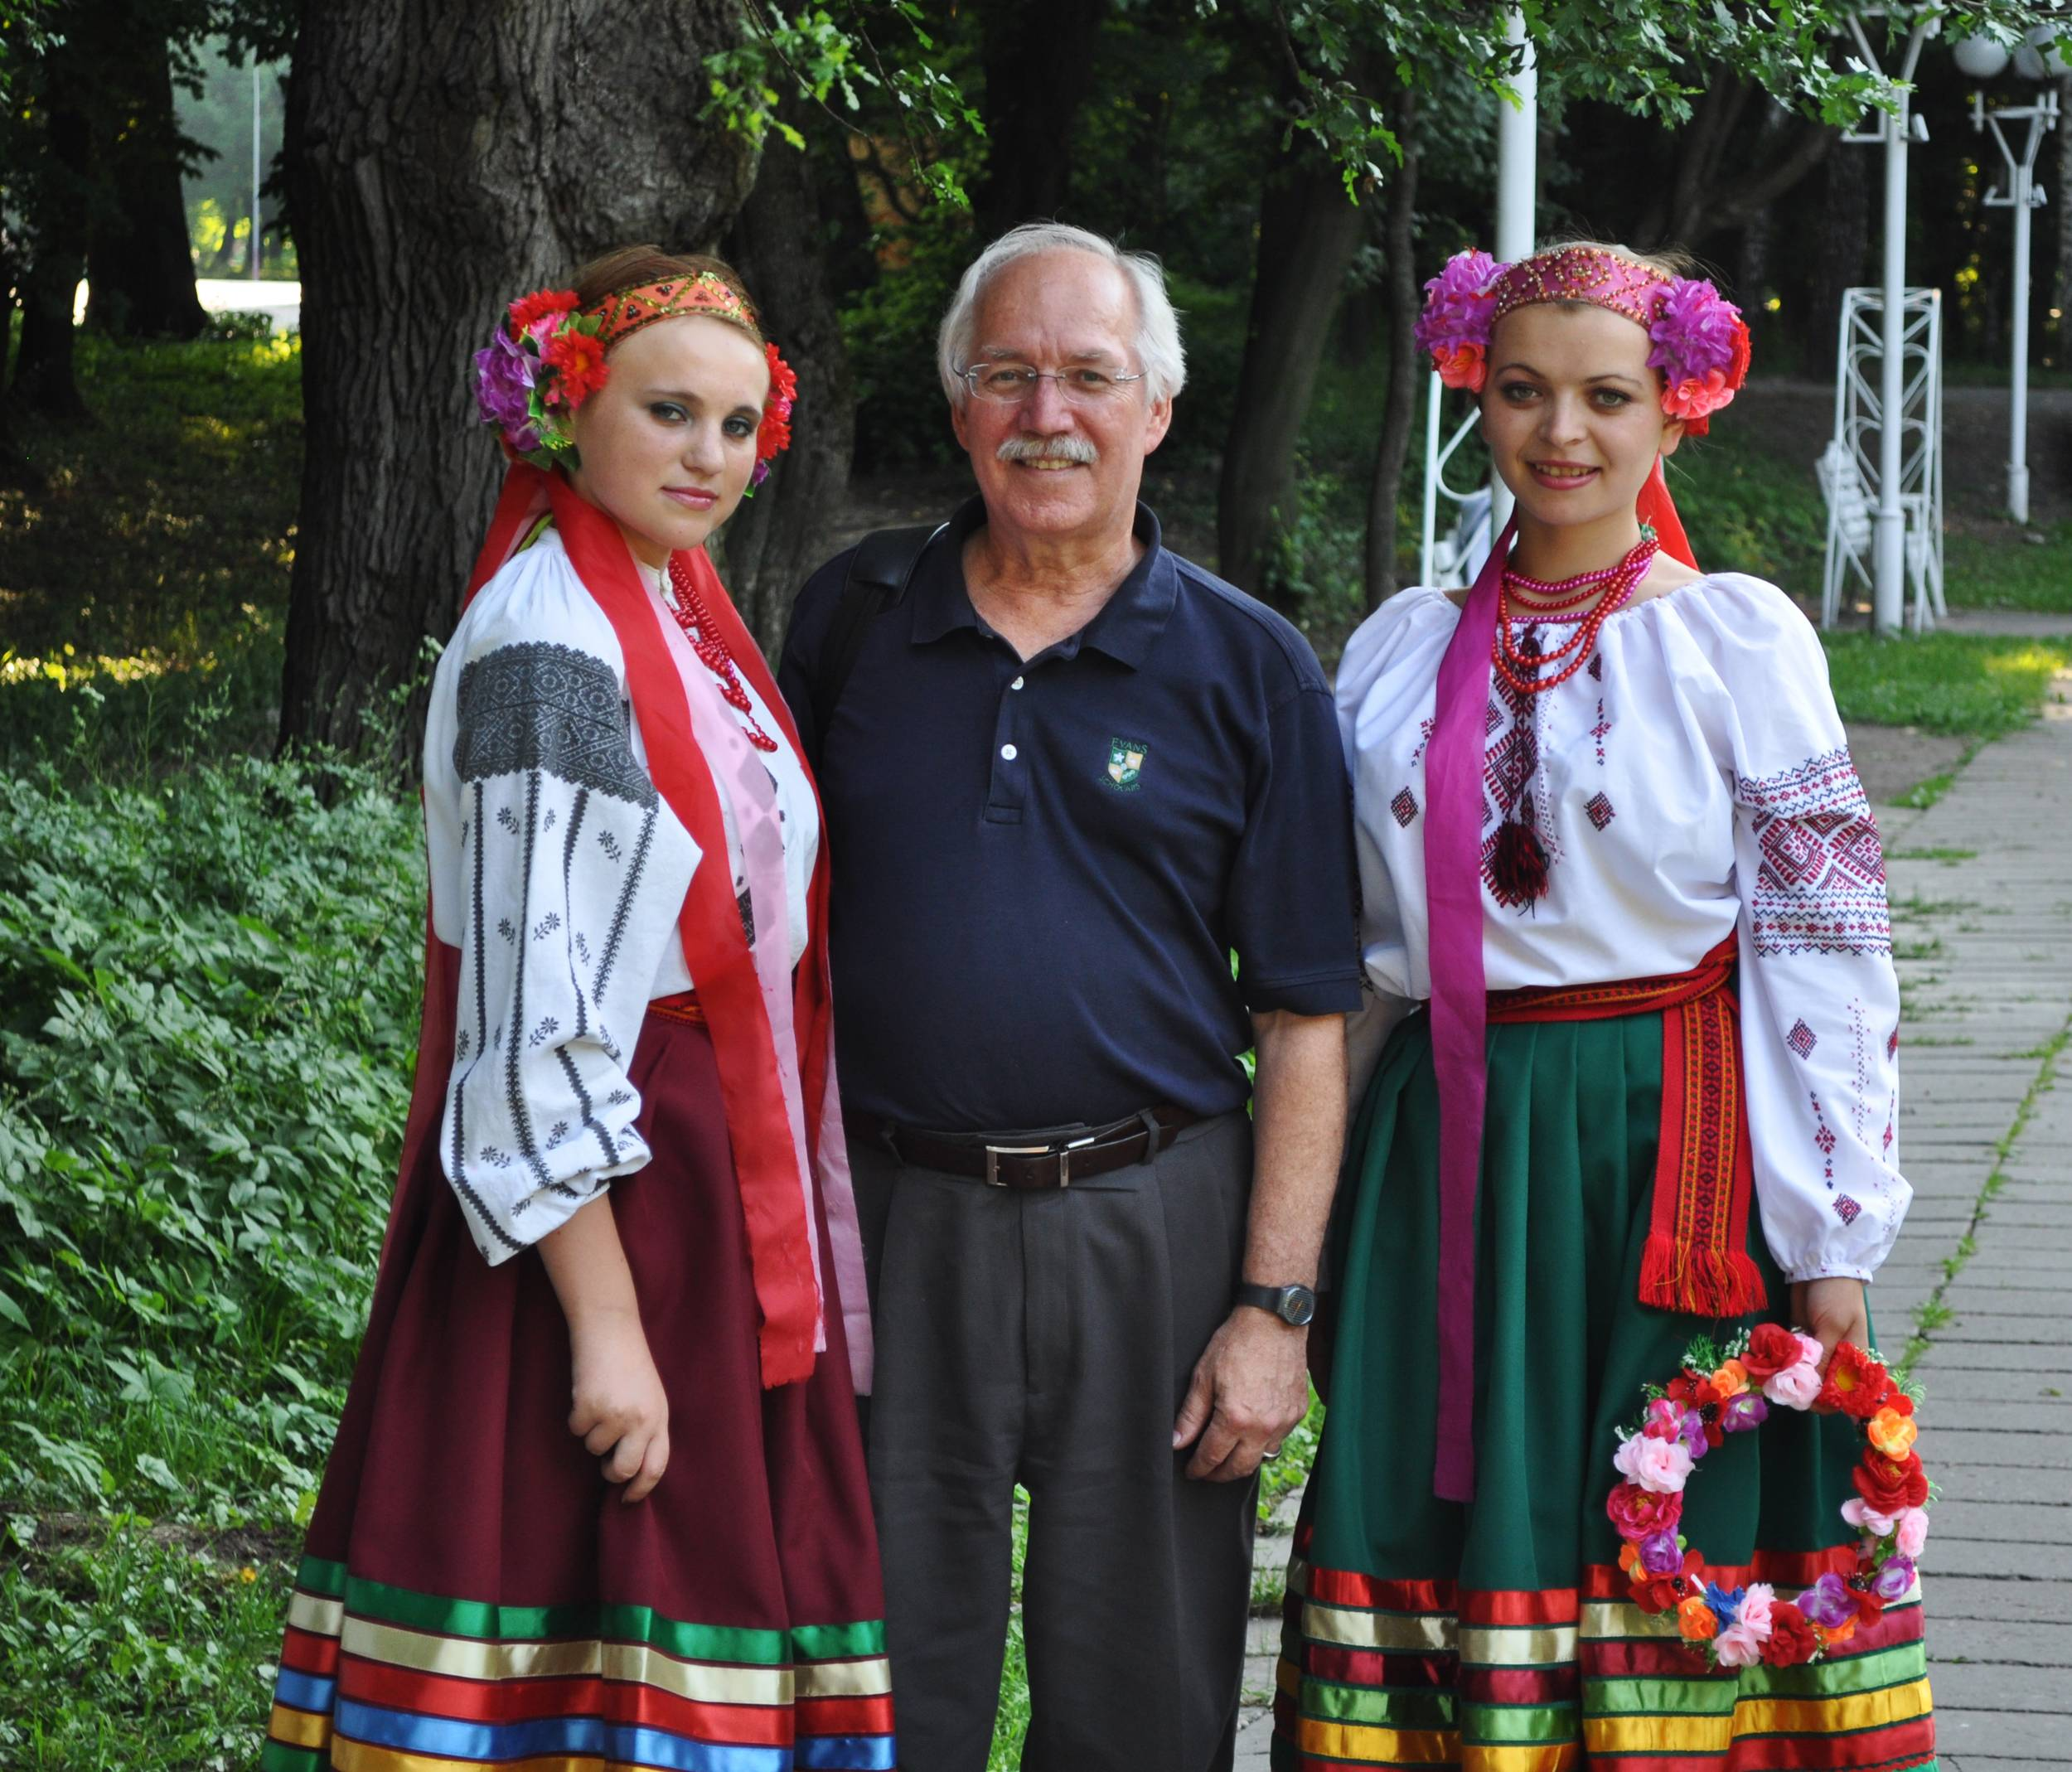 St. Charles Peace Corps volunteer Michael Dixon visits with two folk singers at a Ukrainian folk festival in Vinnytsia.